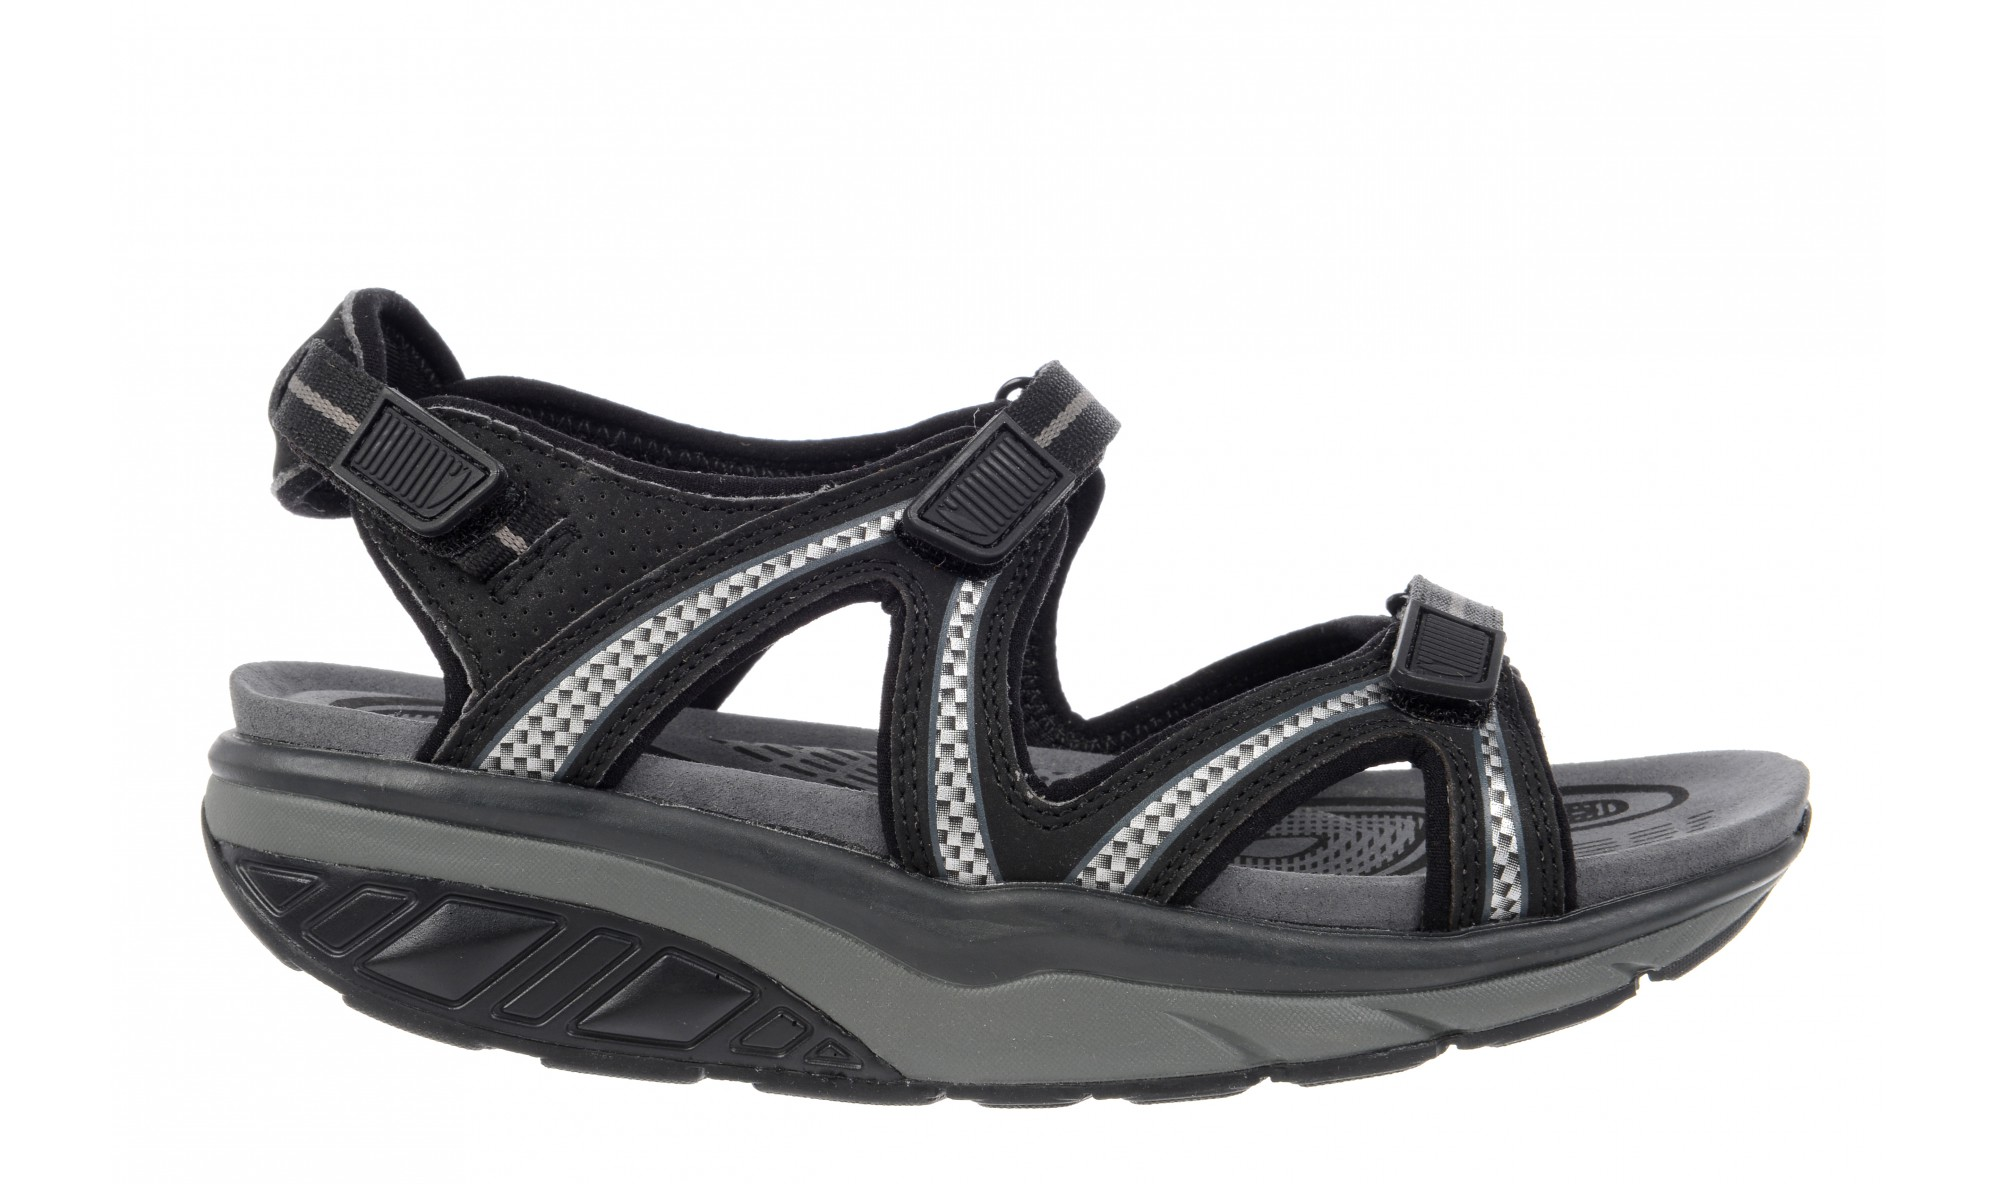 MBT Lila 6 Sport Women's Sandal Black / Charcoal Gray